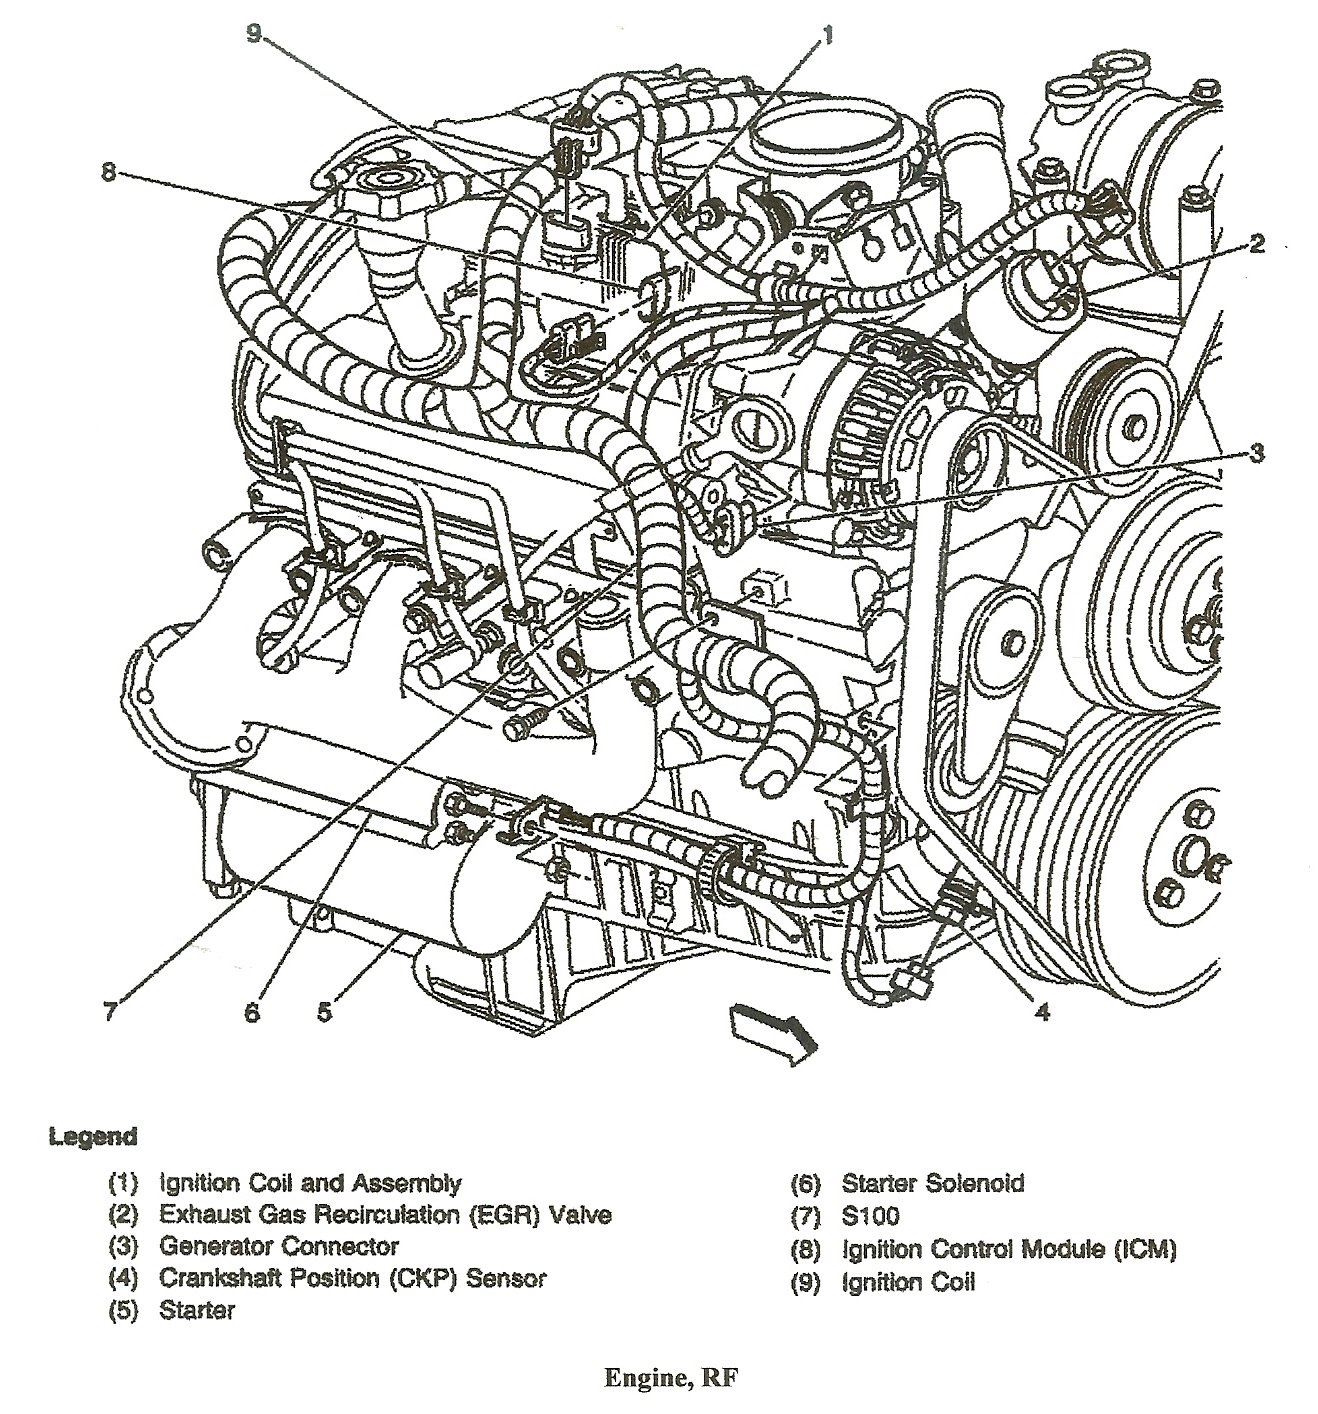 99 Chevy S10 Engine Diagram - Wiring Diagram Text give-improve -  give-improve.albergoristorantecanzo.it | 99 S10 Wiring Diagram 4 3 Engine |  | give-improve.albergoristorantecanzo.it